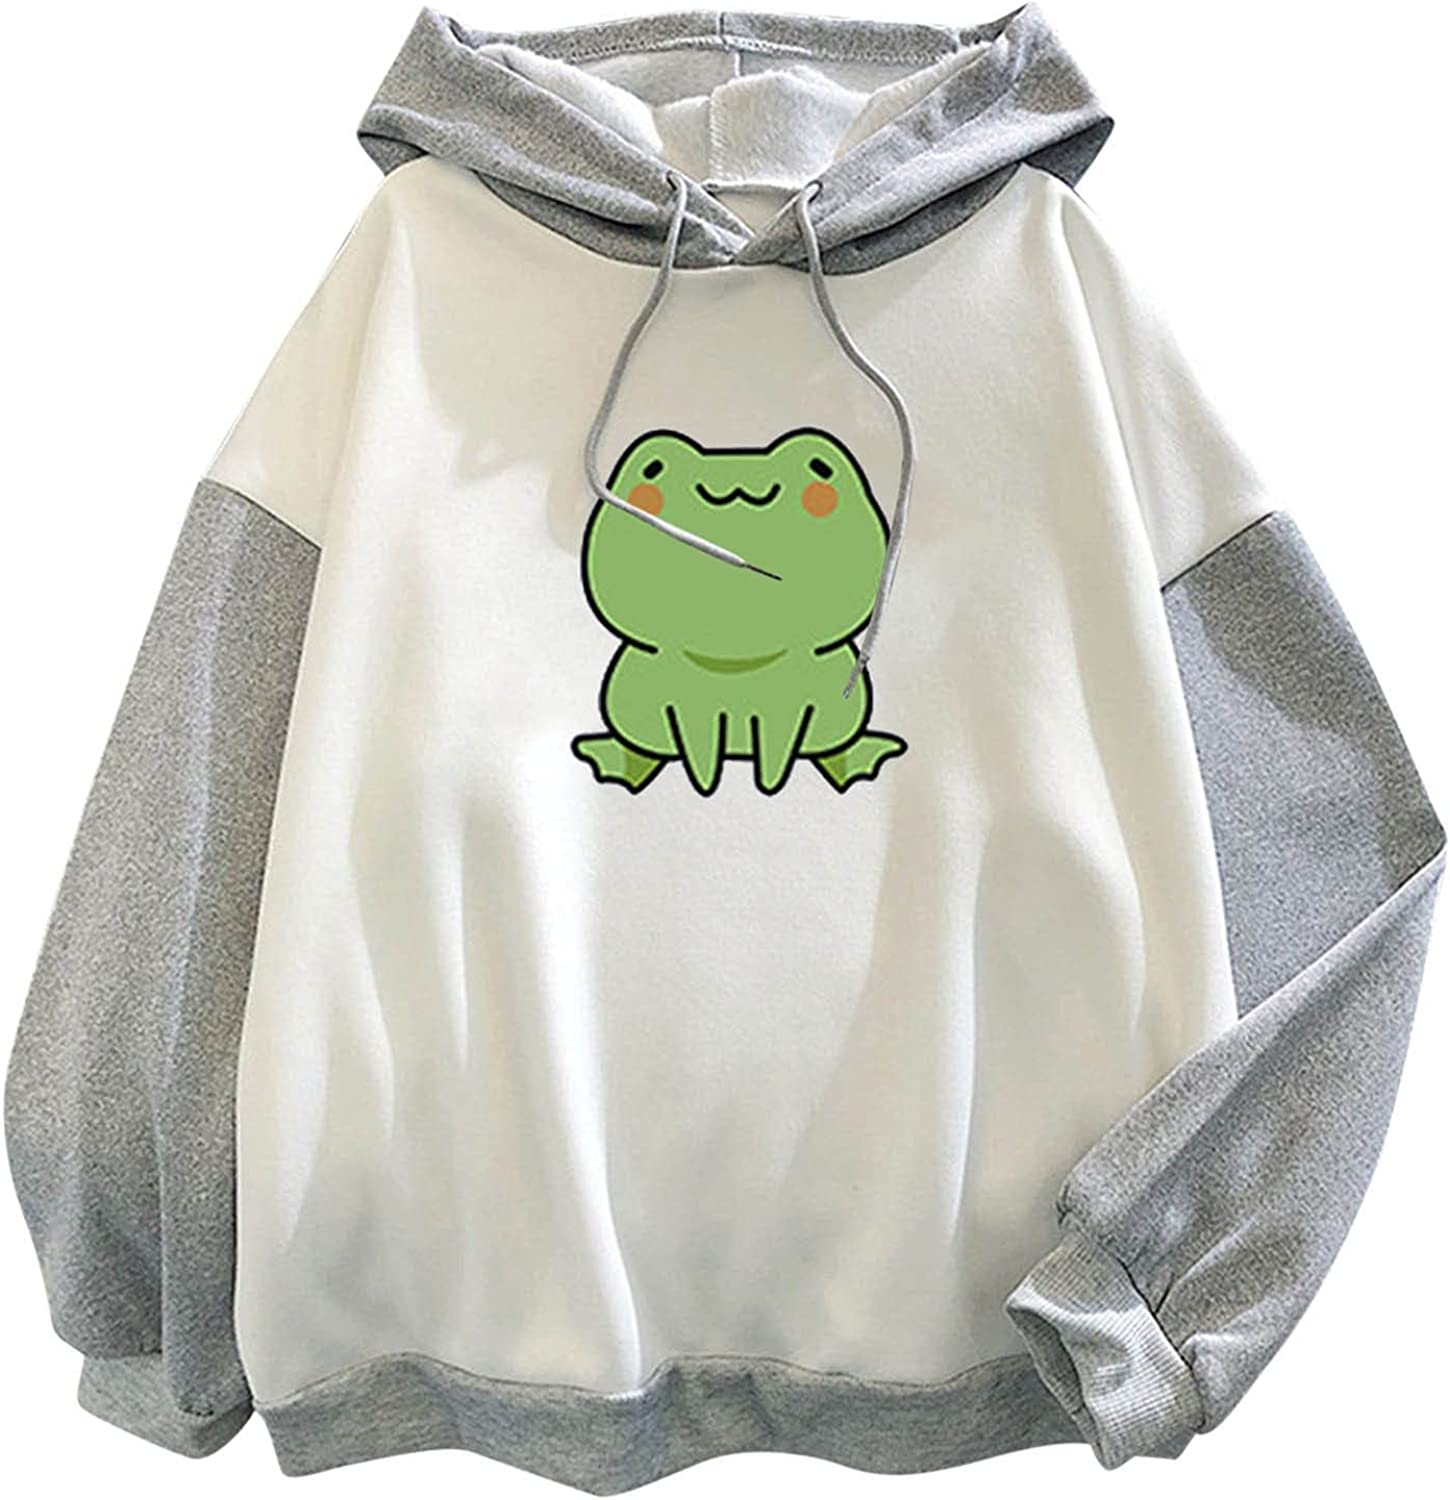 Aiouios Cute Hoodie for Women Pullover with Design, Fashion Frog Print New Stitching Crewneck Sweatshirts Tops